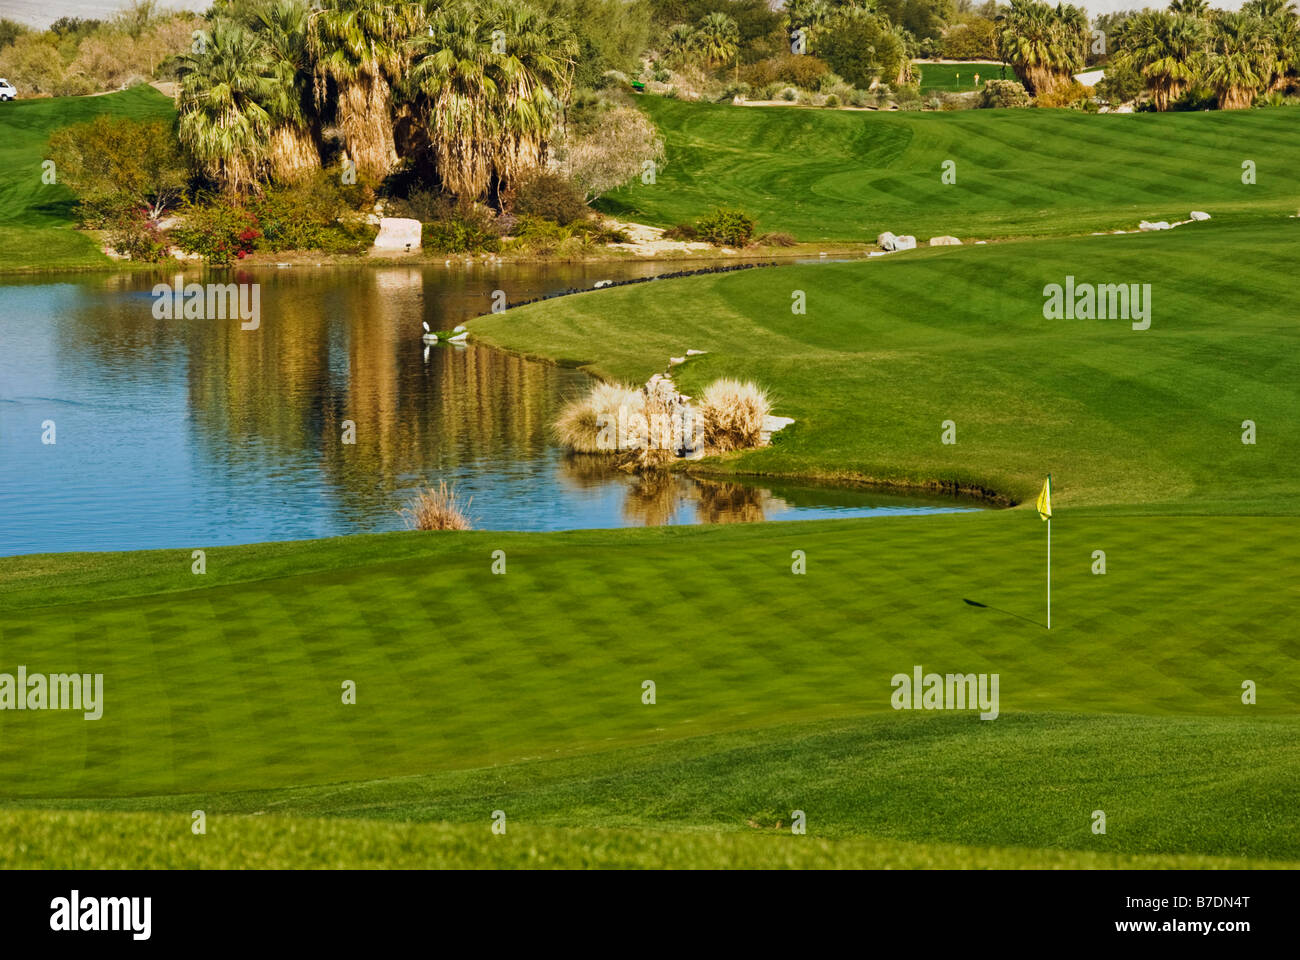 Golf Usa Stock Photos & Golf Usa Stock Images - Alamy